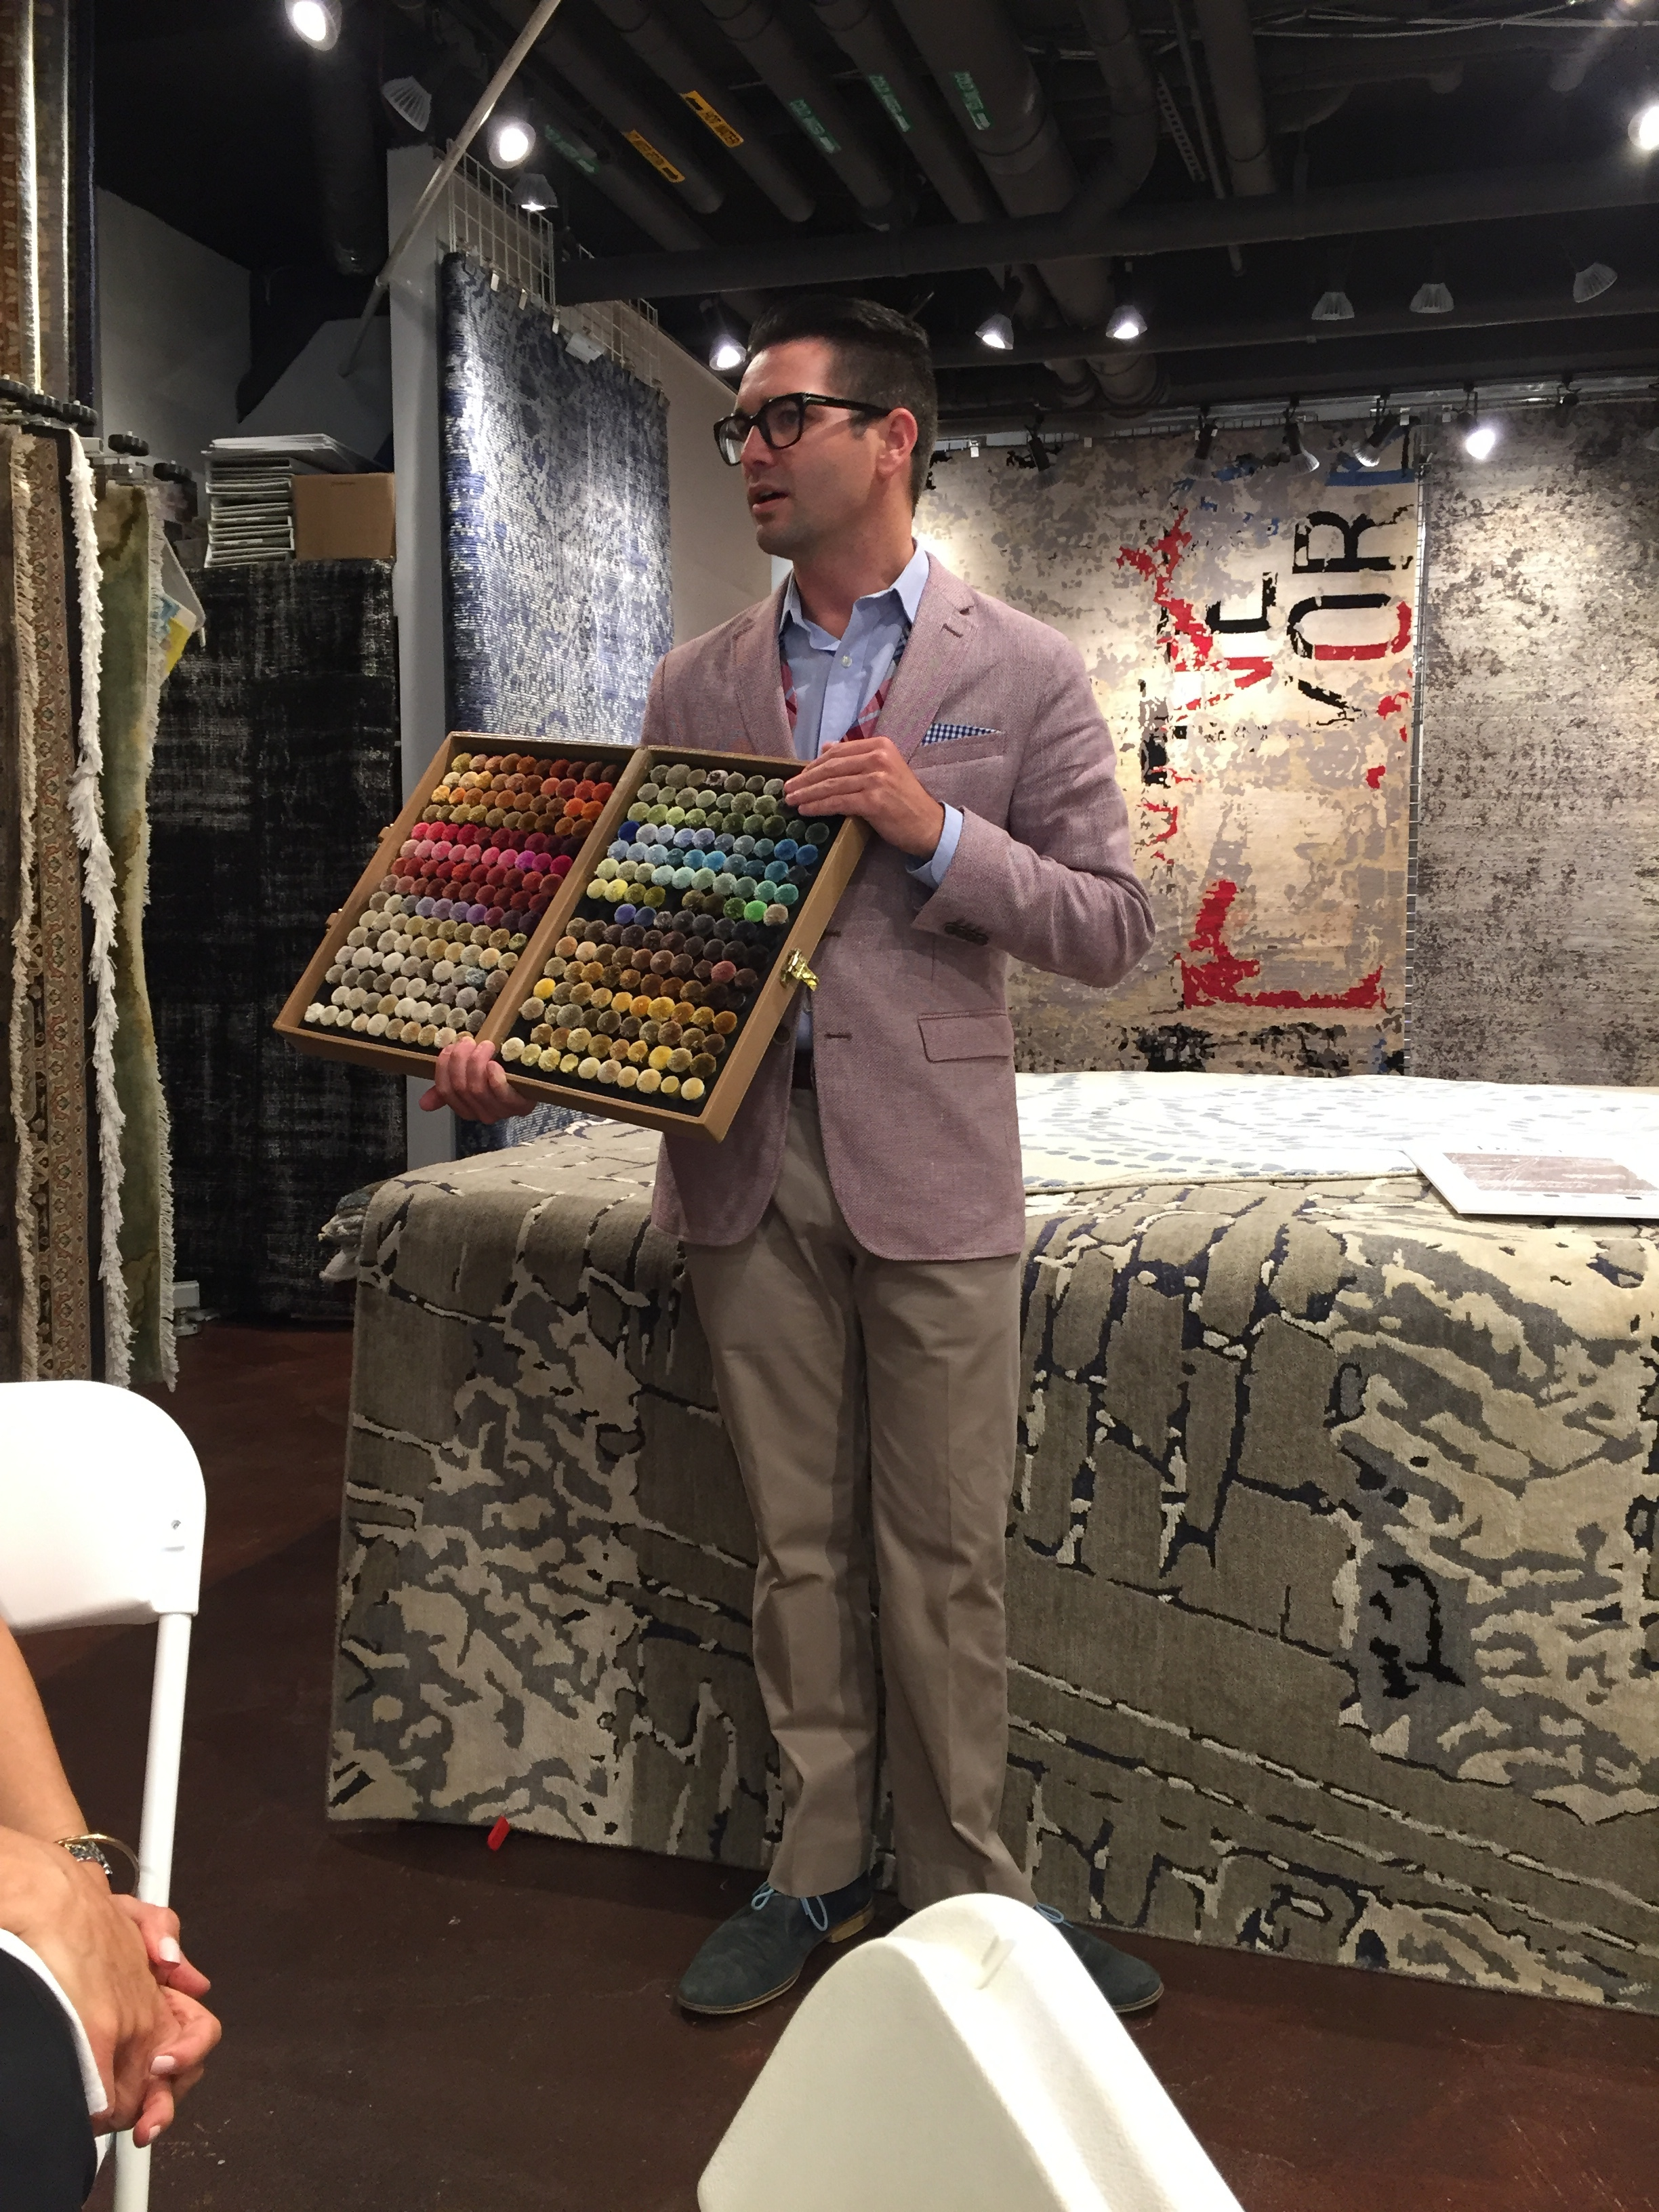 Eric showing color poms, which are available for those who would like to order rugs to match their design needs.